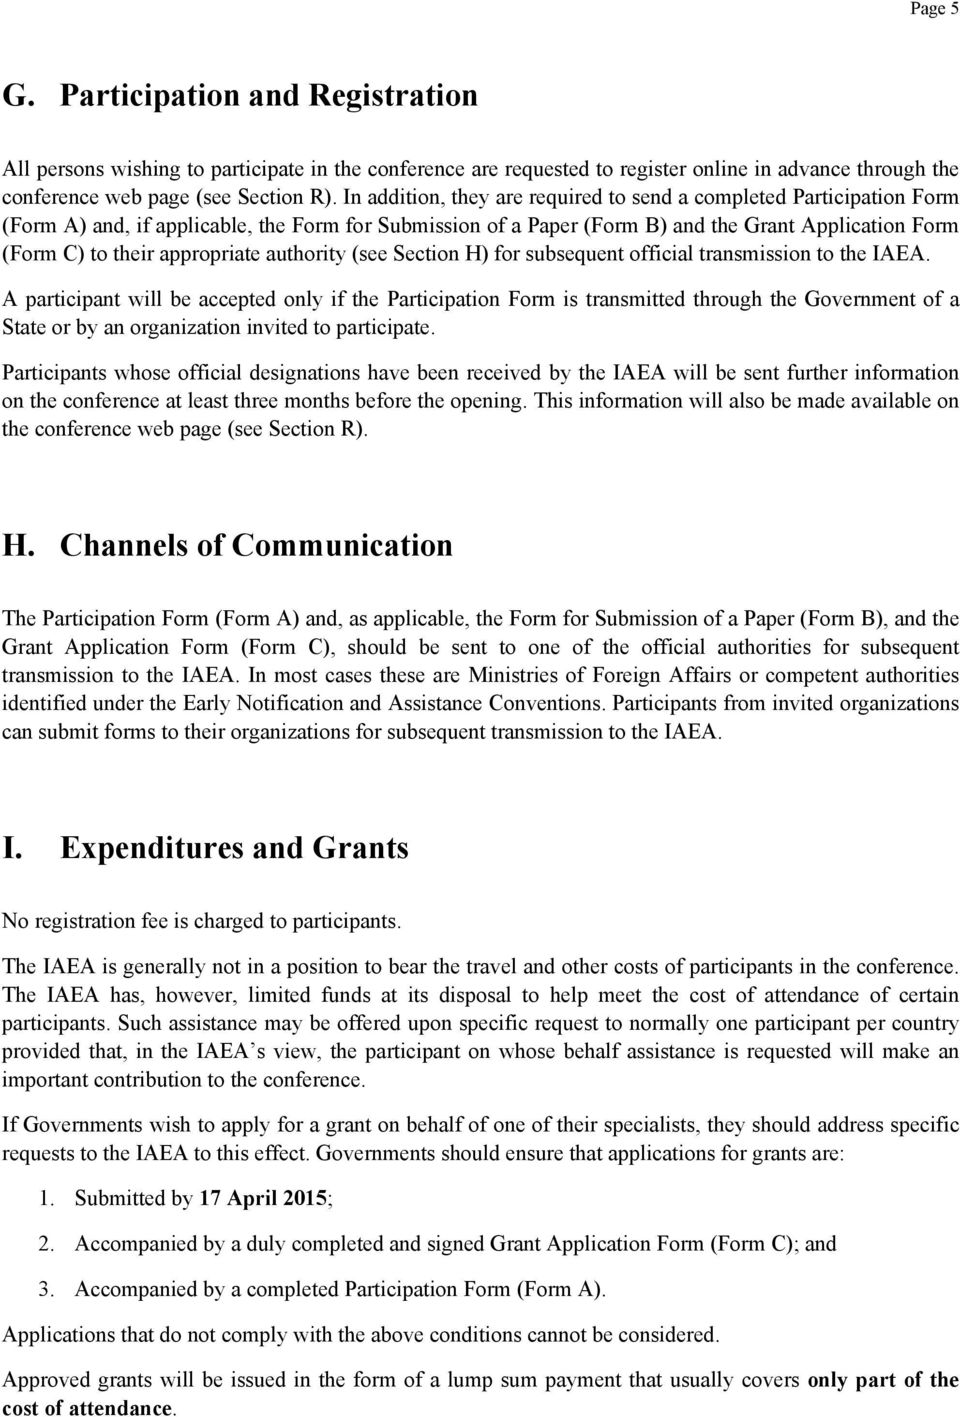 appropriate authority (see Section H) for subsequent official transmission to the IAEA.